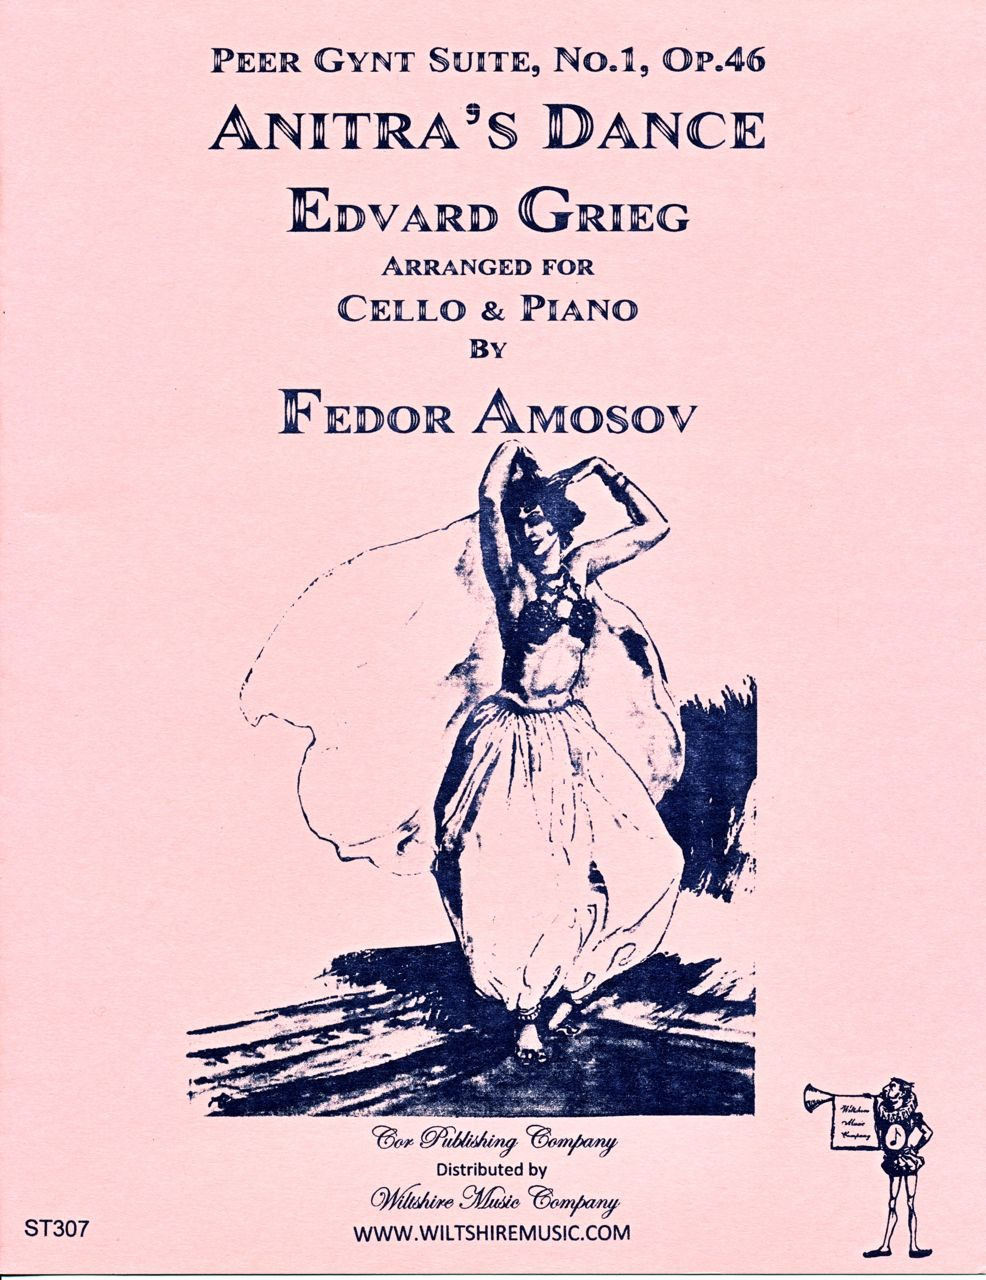 Anitra's Dance, Edvard Grieg (Amosov) cello & piano